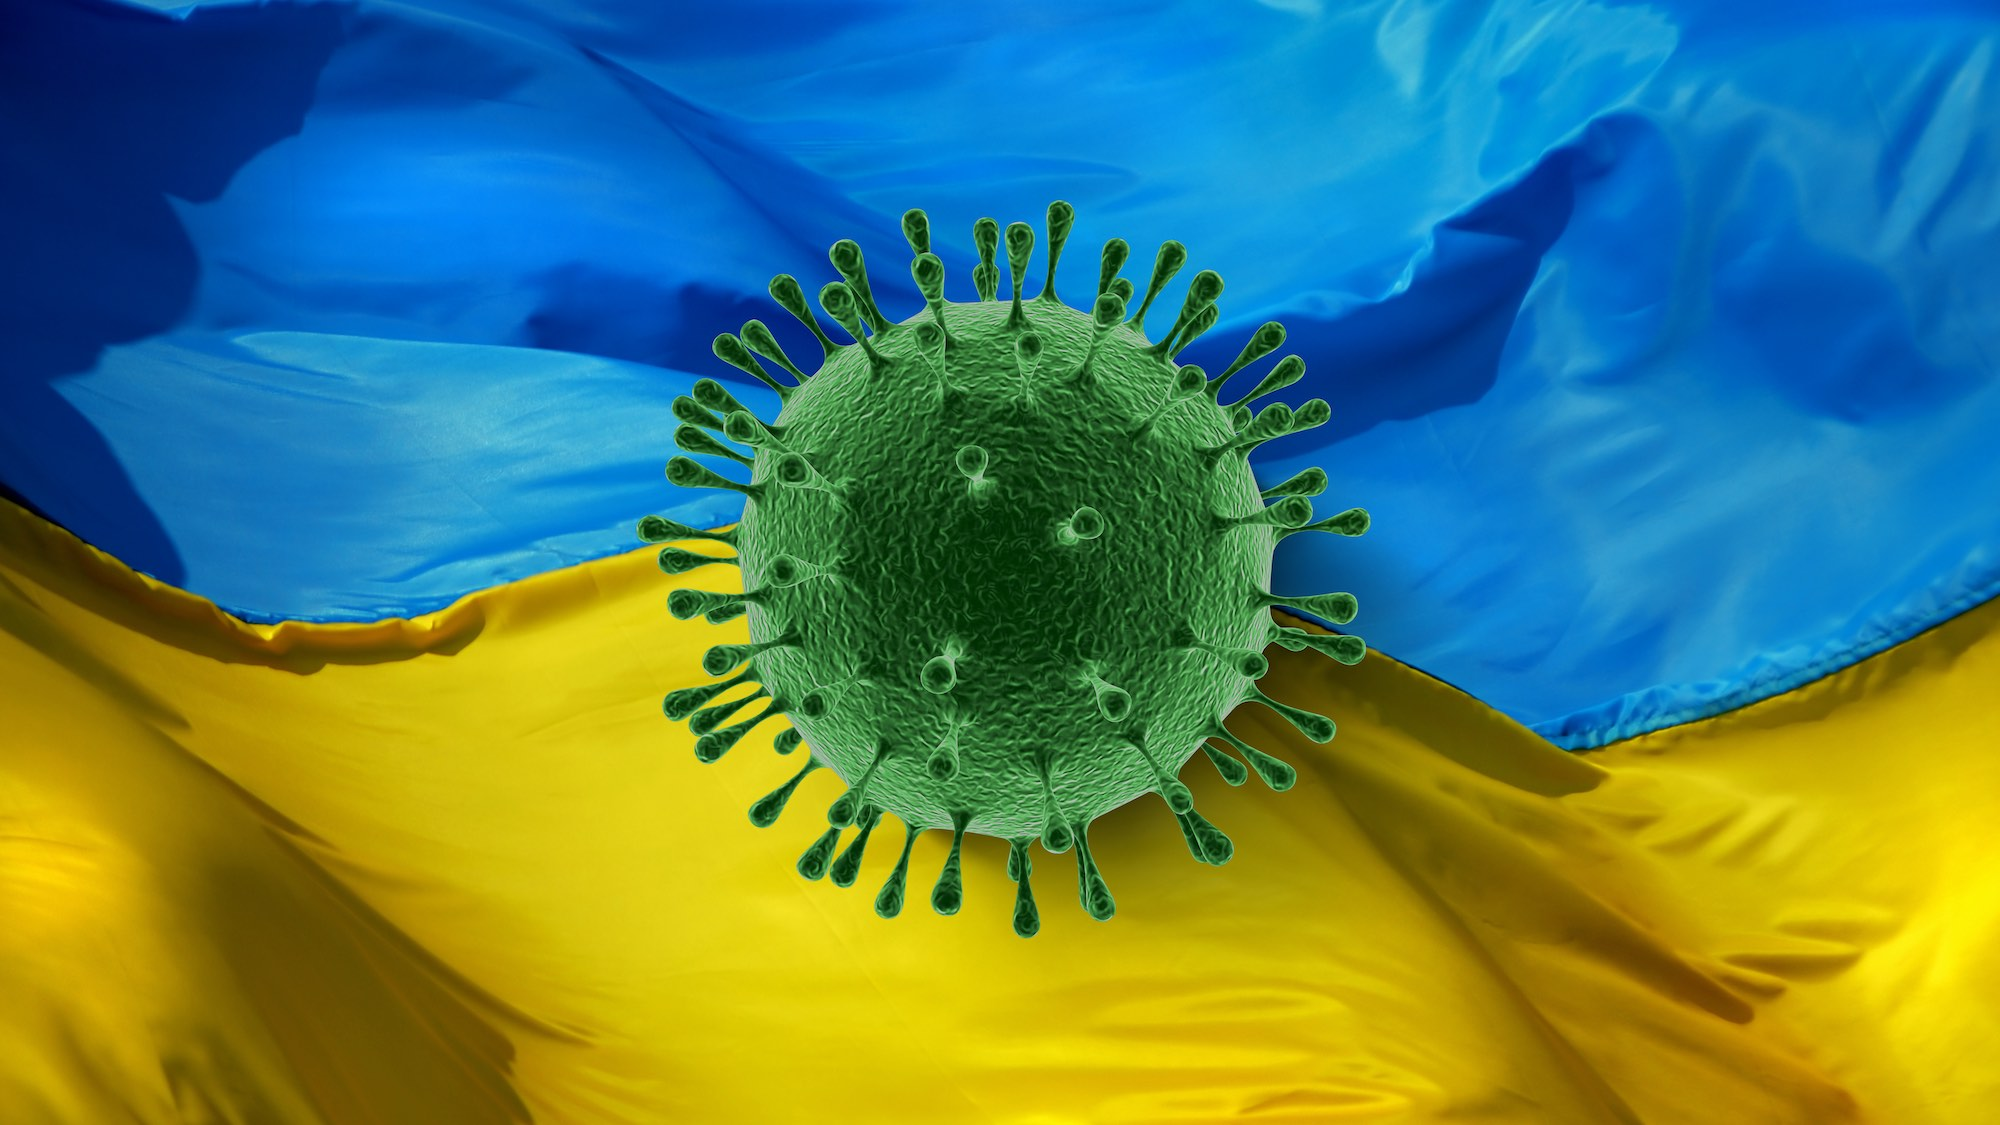 10 Industries Less Affected by Coronavirus